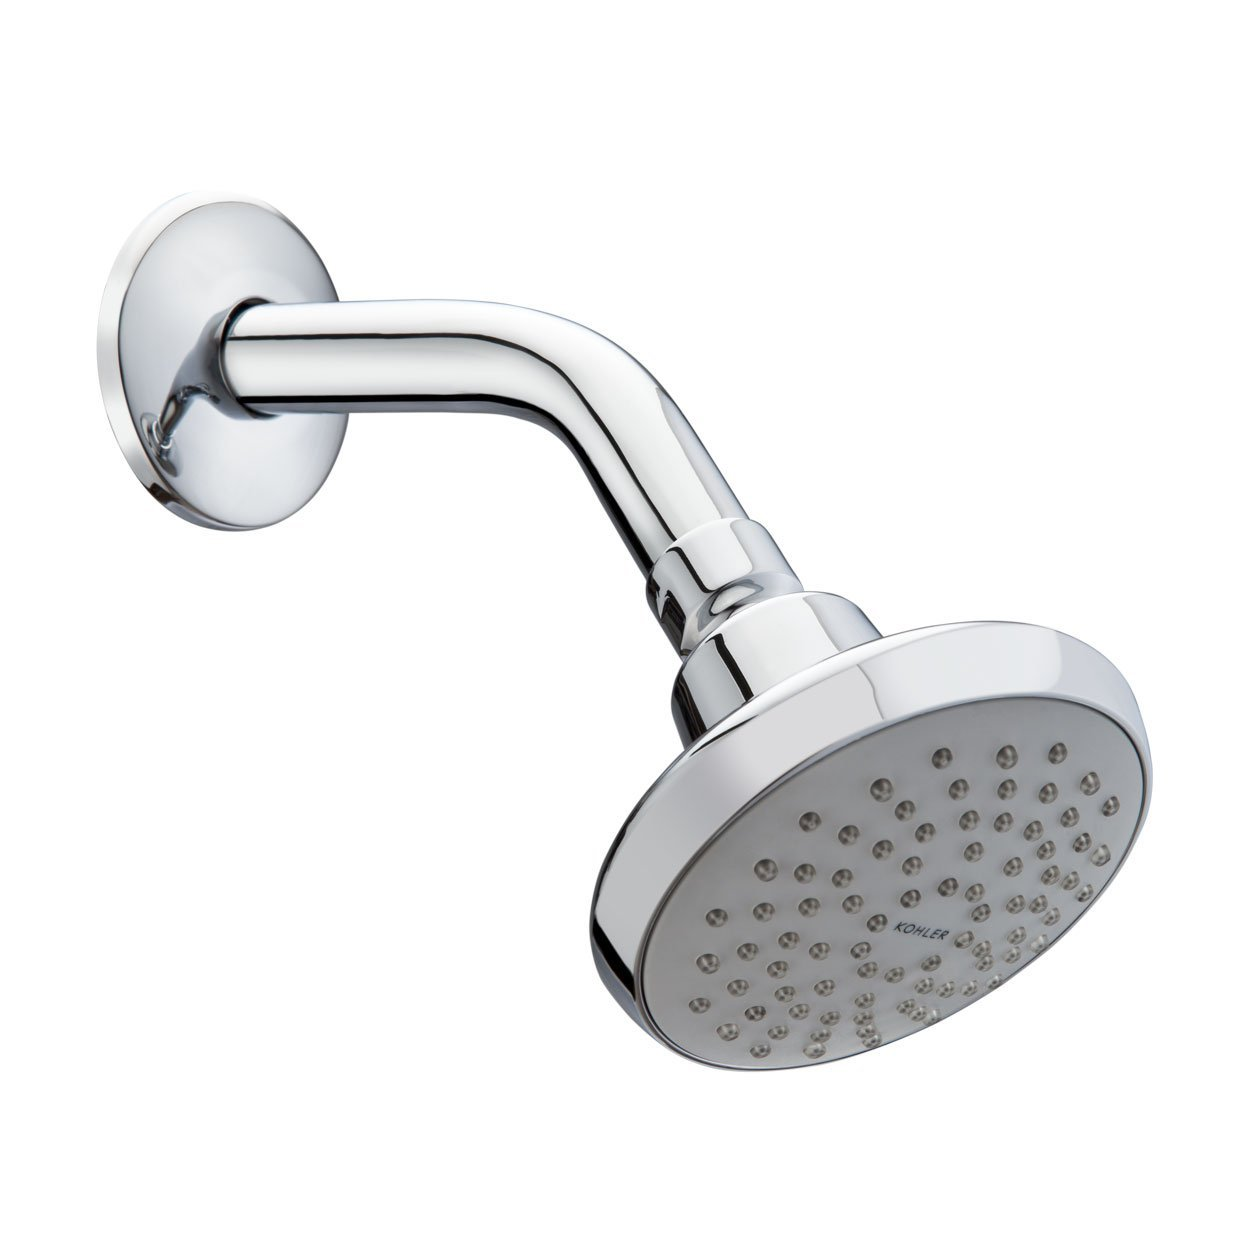 Buy Kohler Complementary Sf Shower Head With Arm And